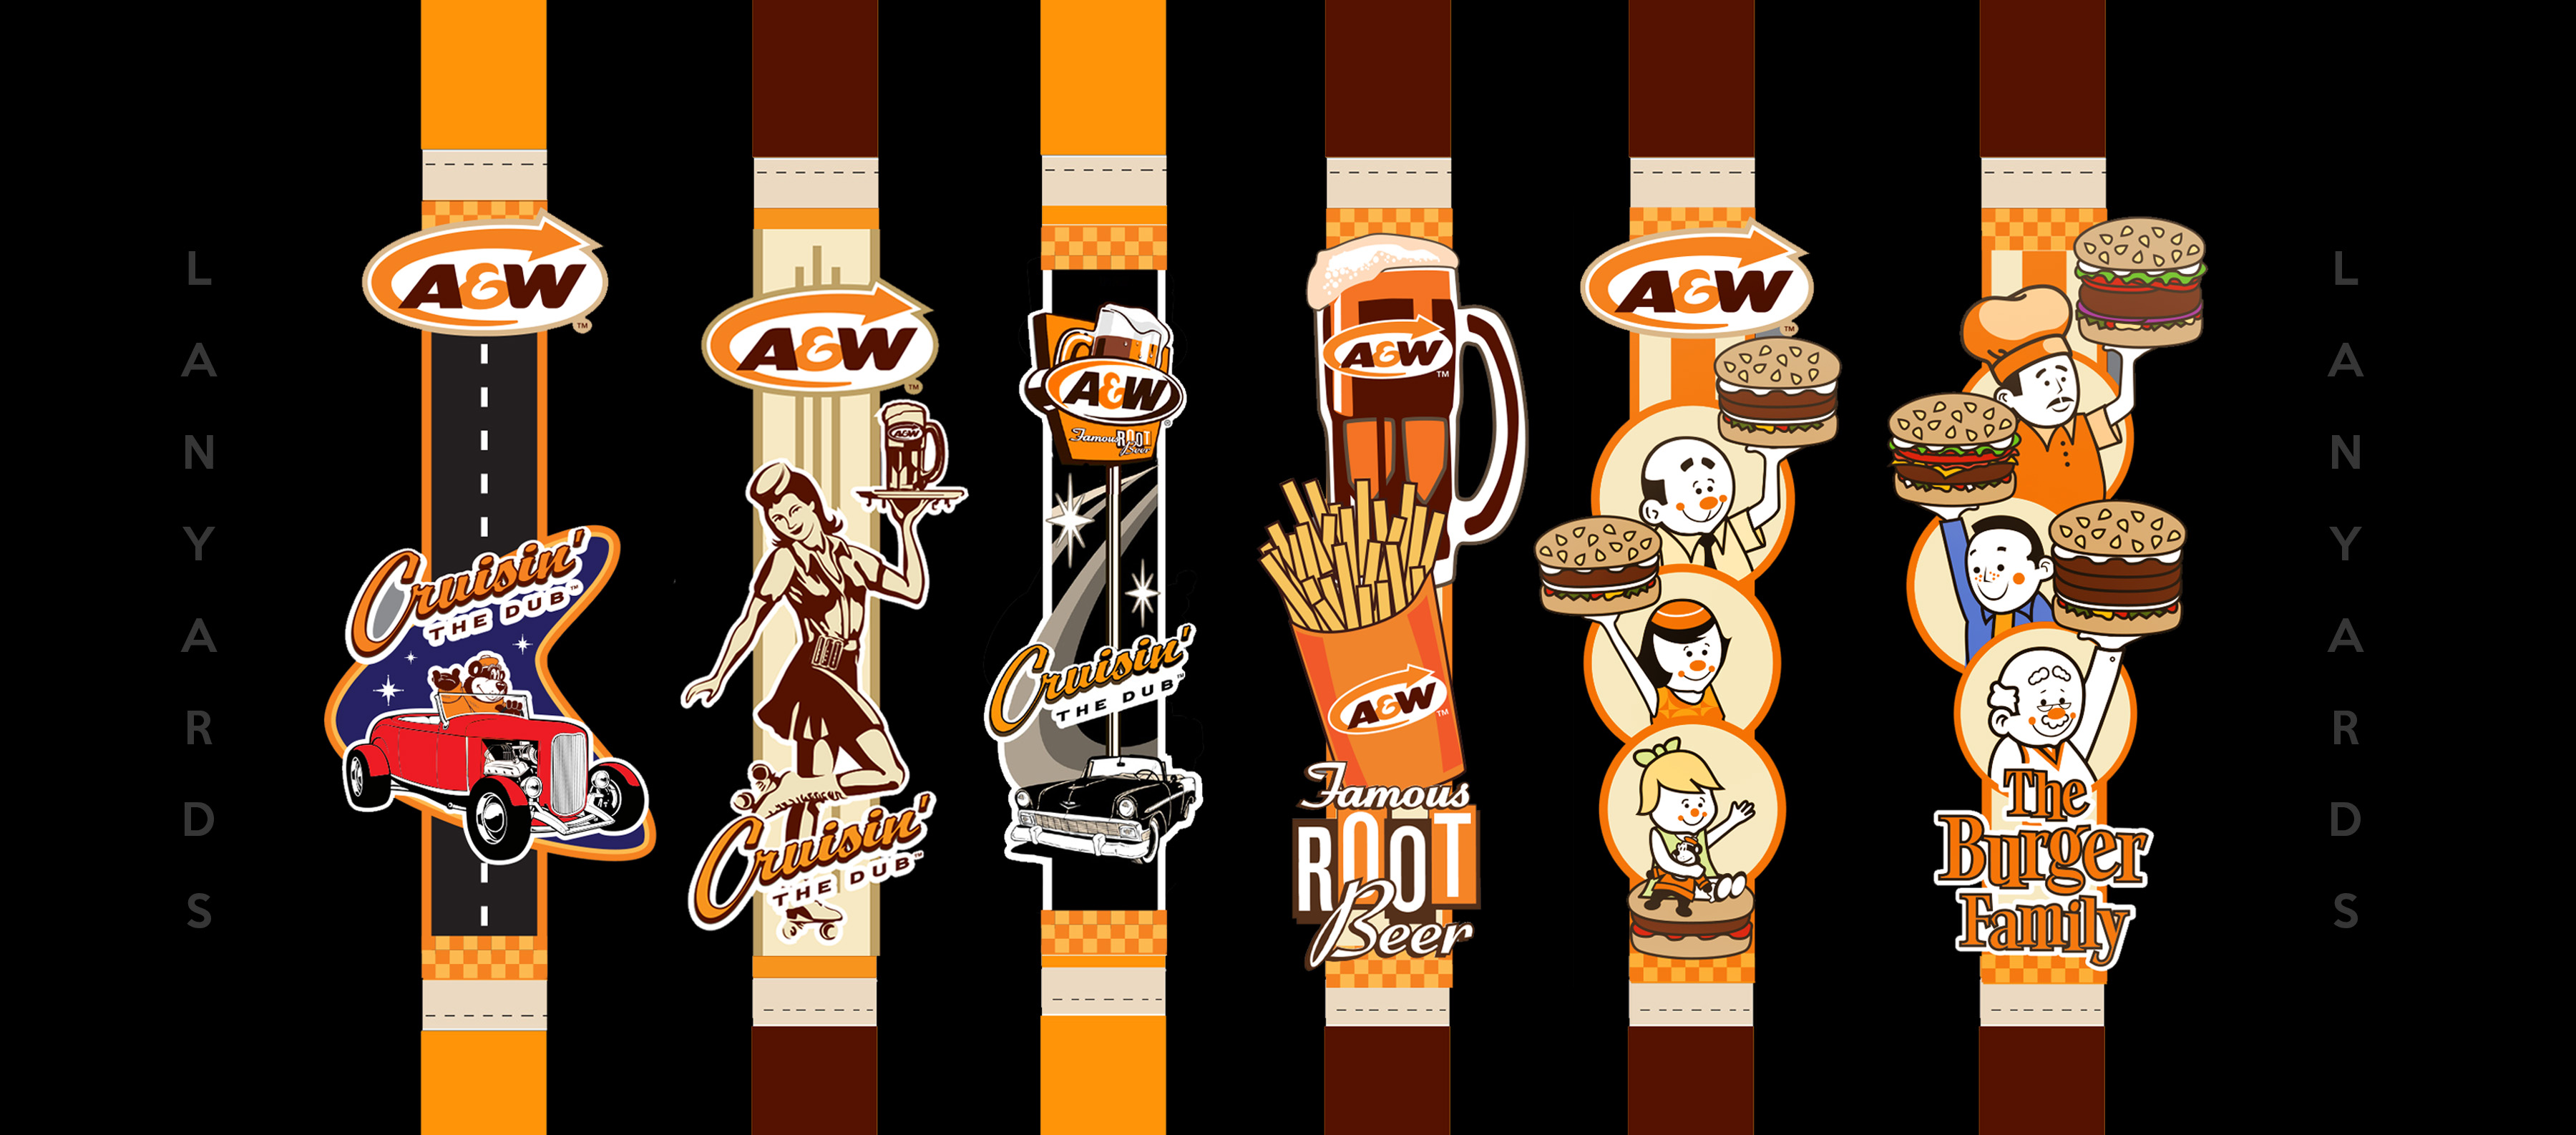 A&W LANYARDS